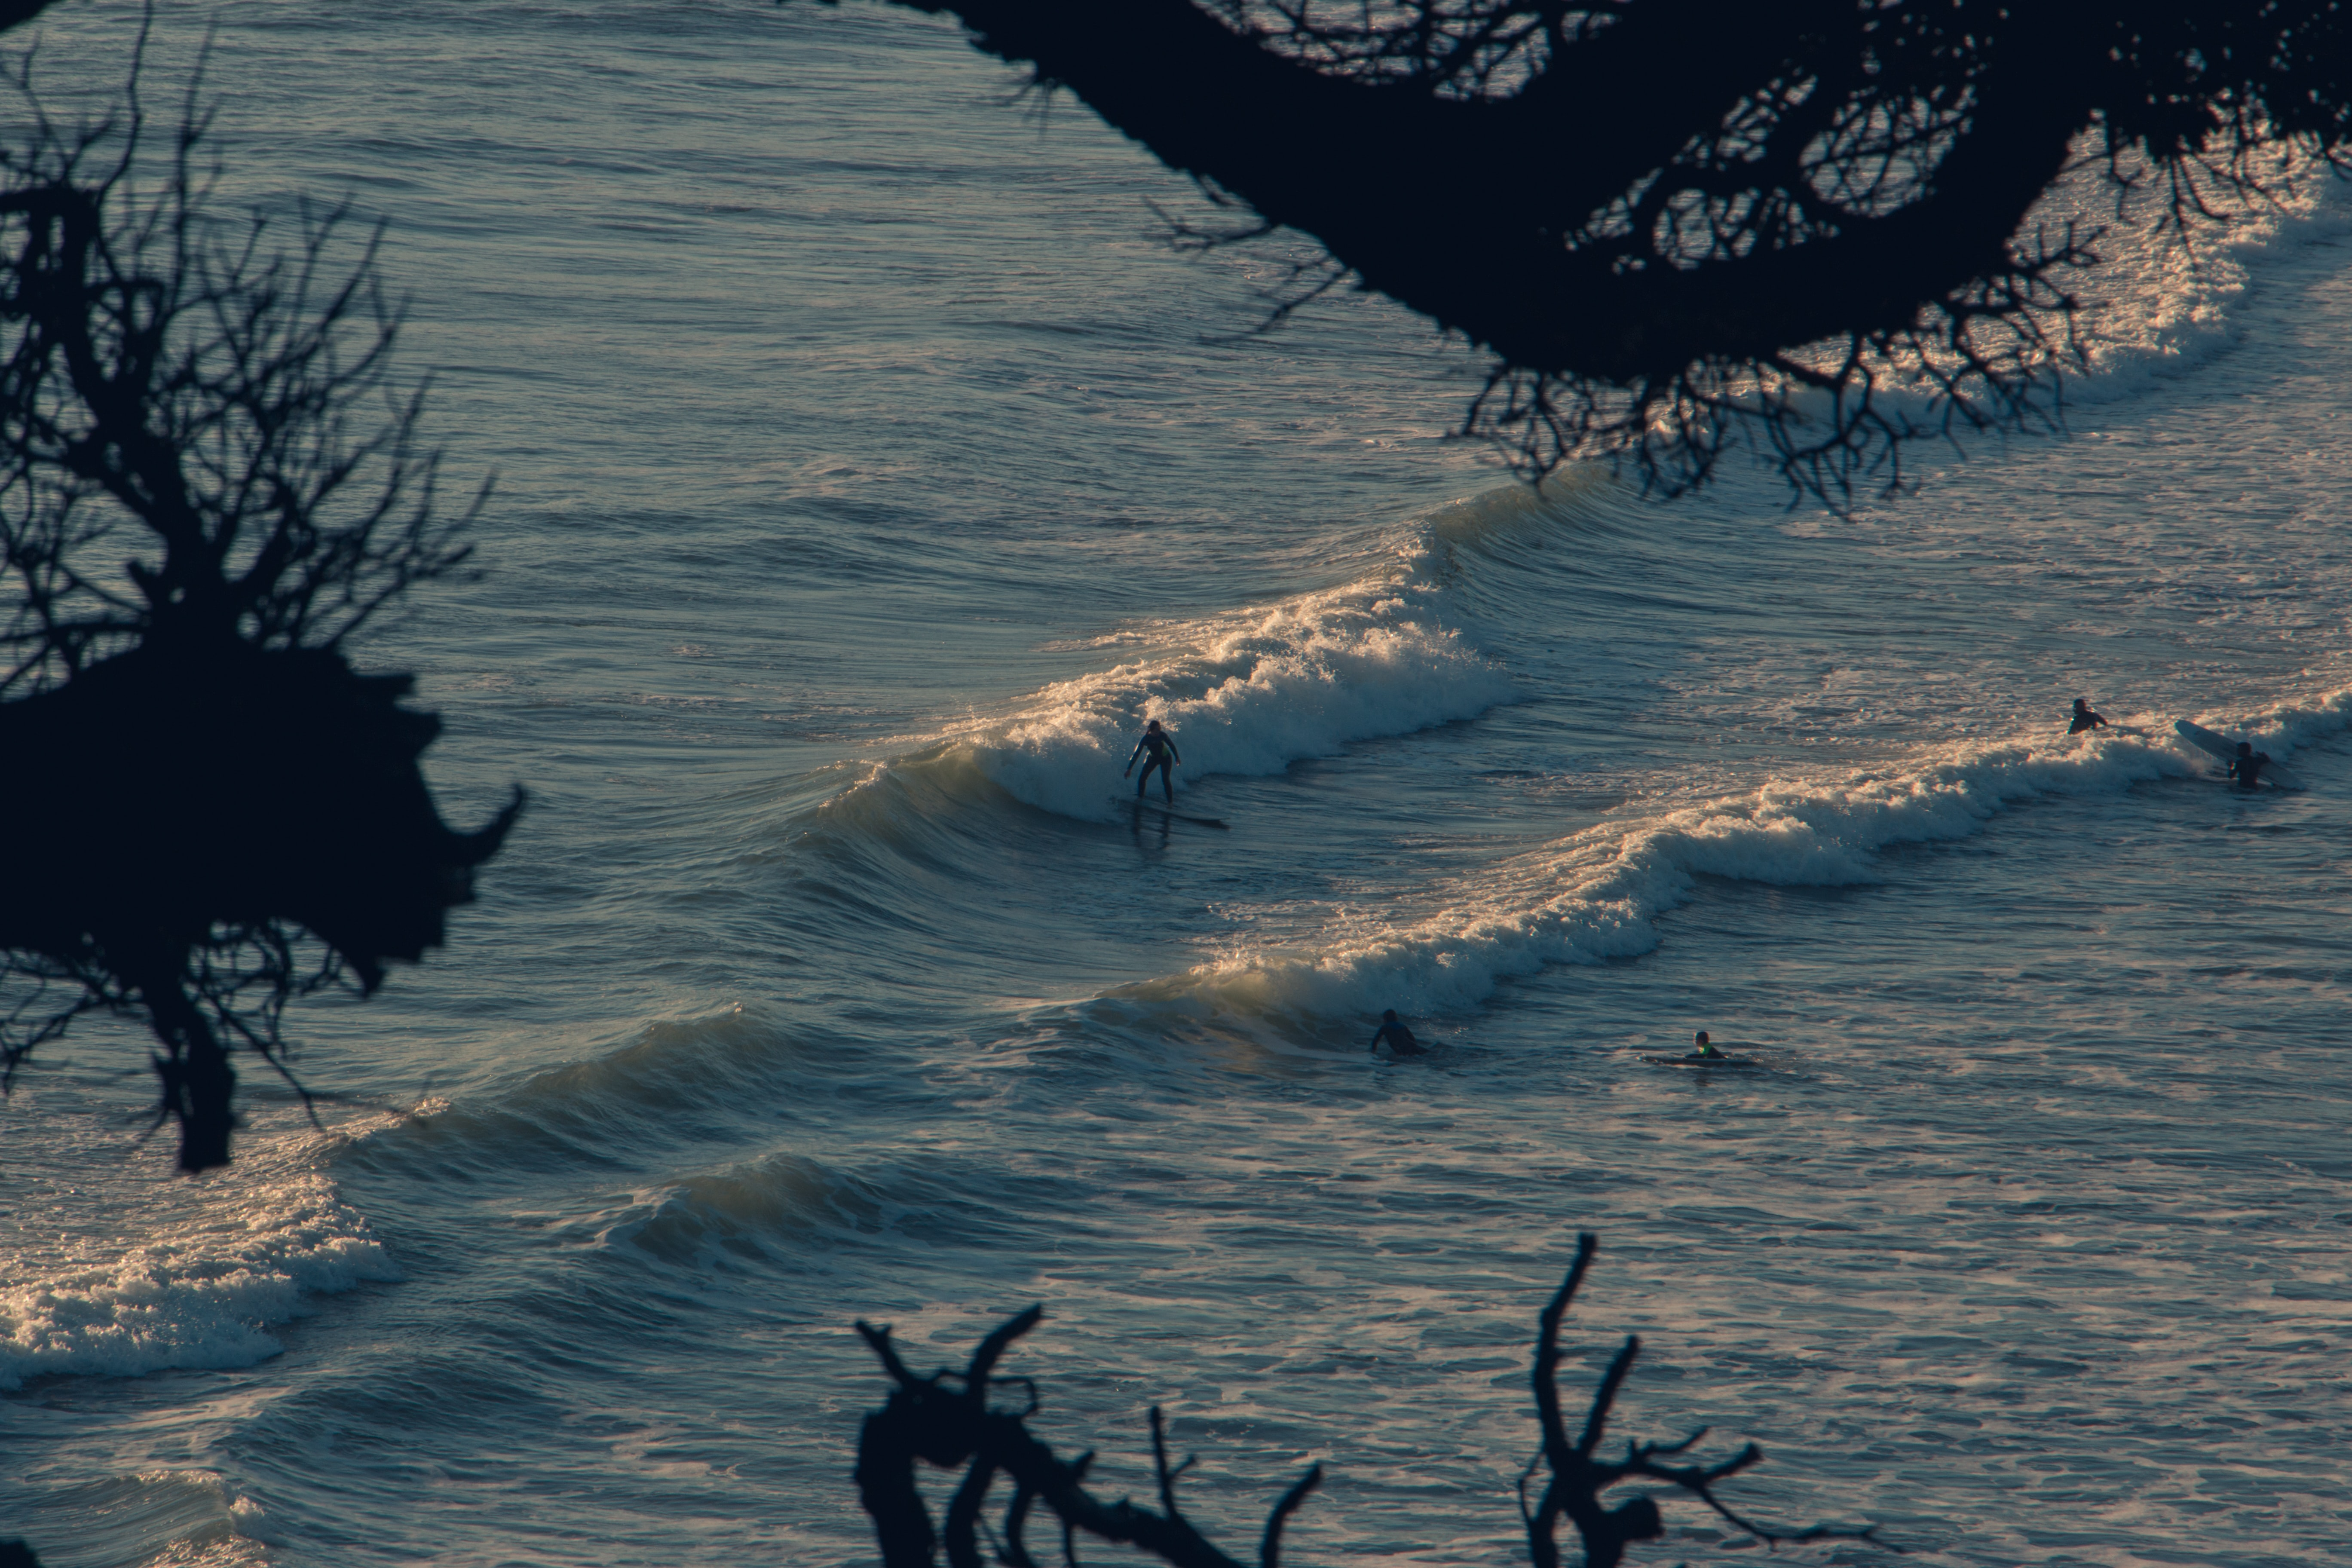 person riding surfboard on body of water